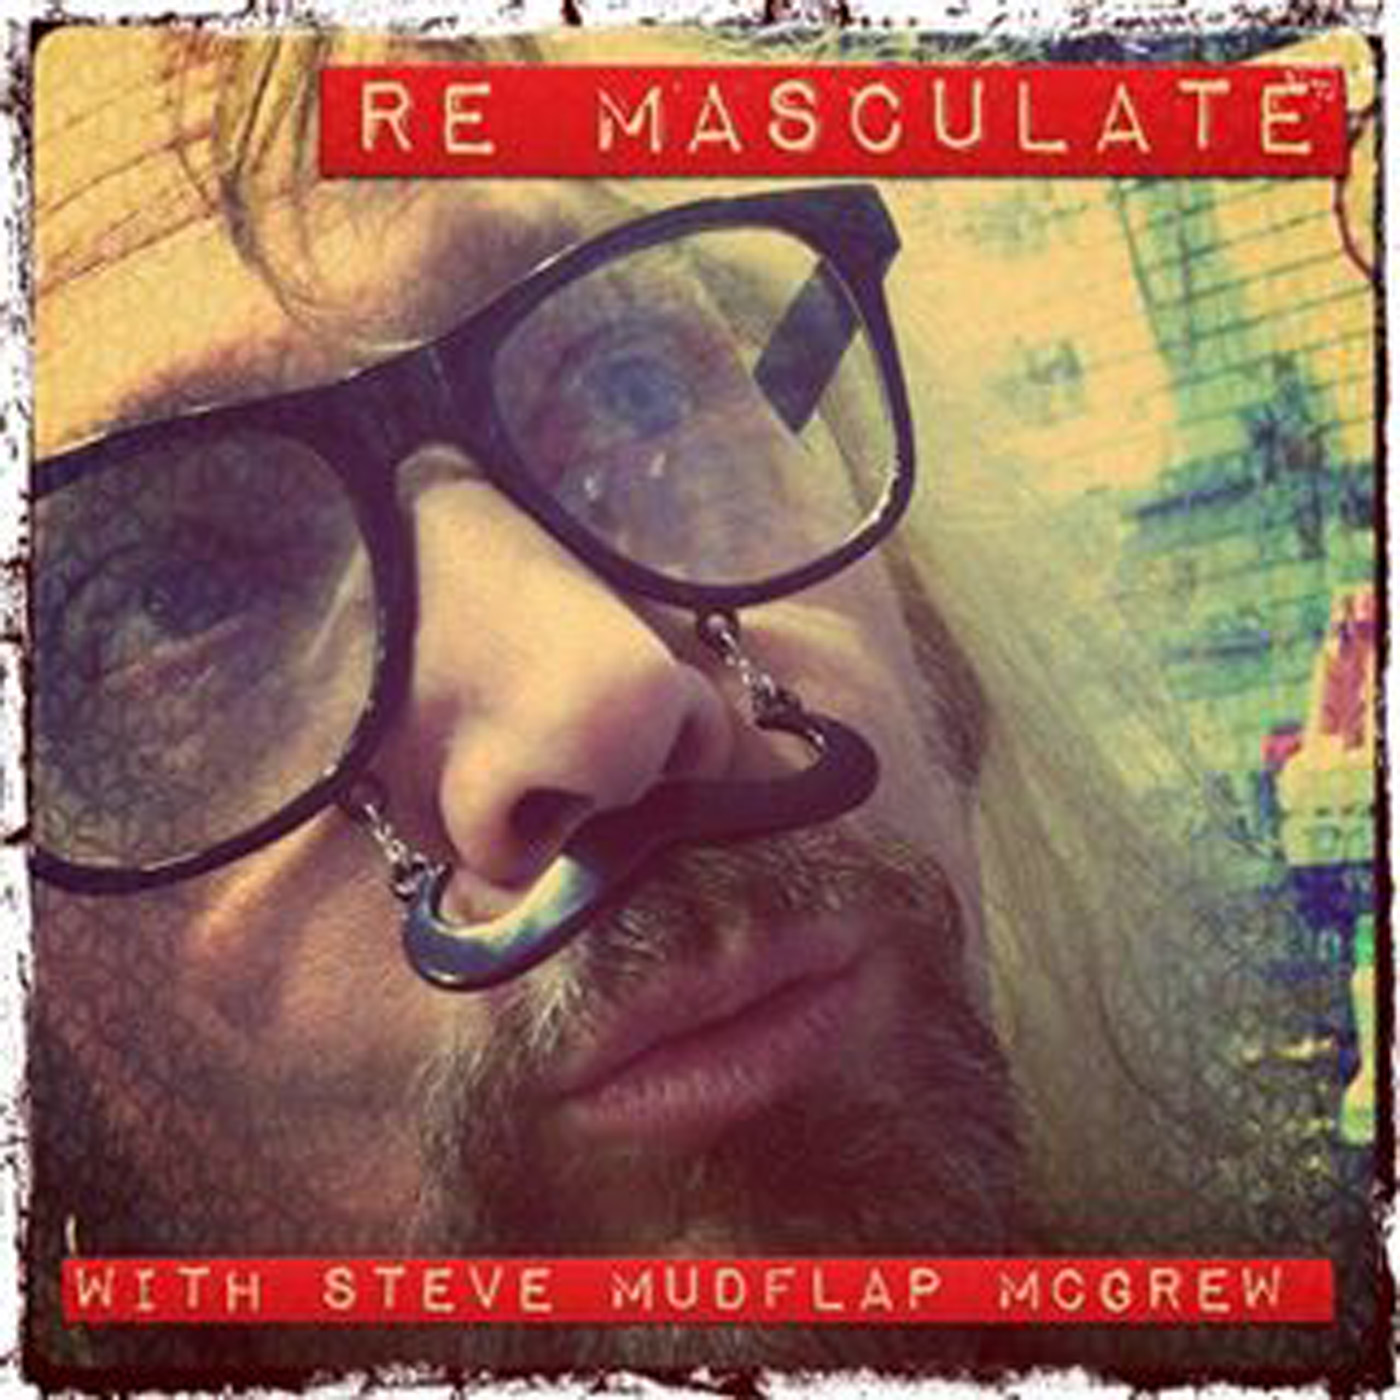 Steve Mudflap McGrew's REMASCULATE podcast